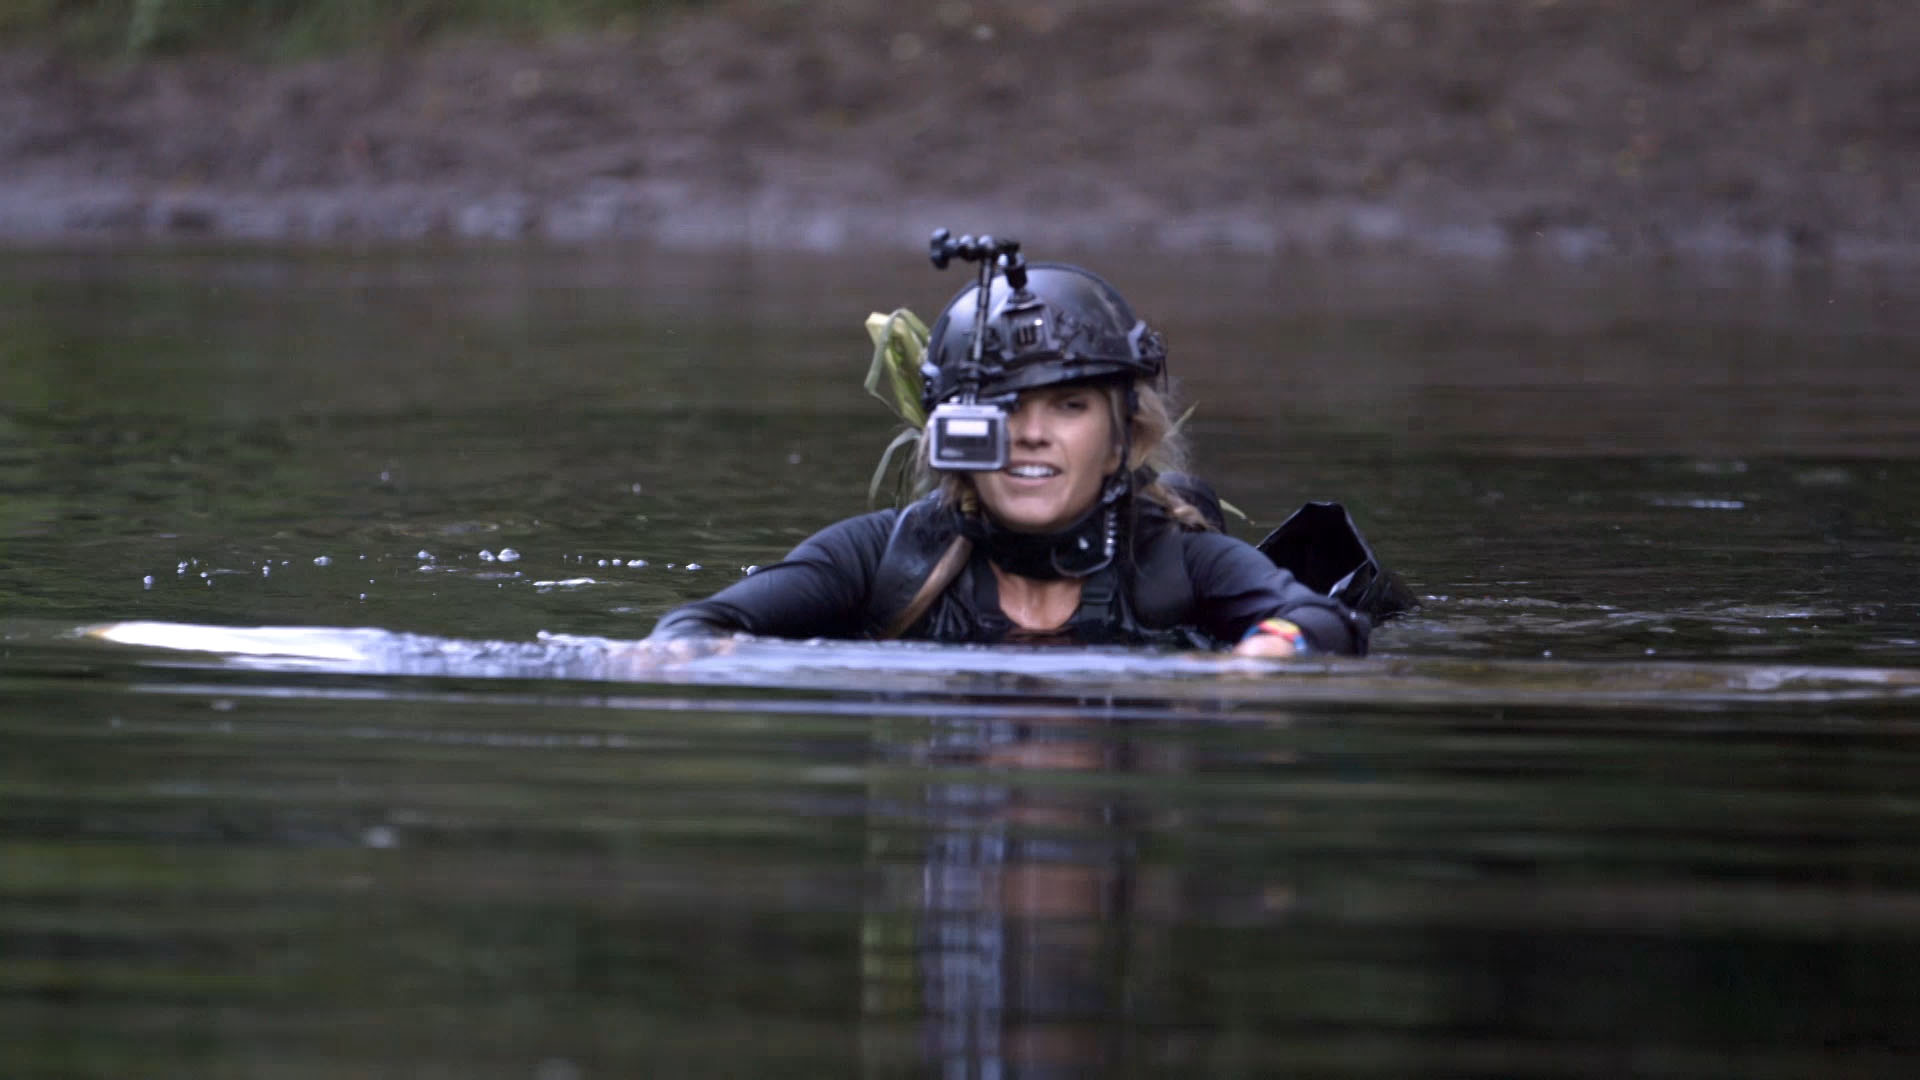 Cross the River - Remote Survival Video - National Geographic Channel